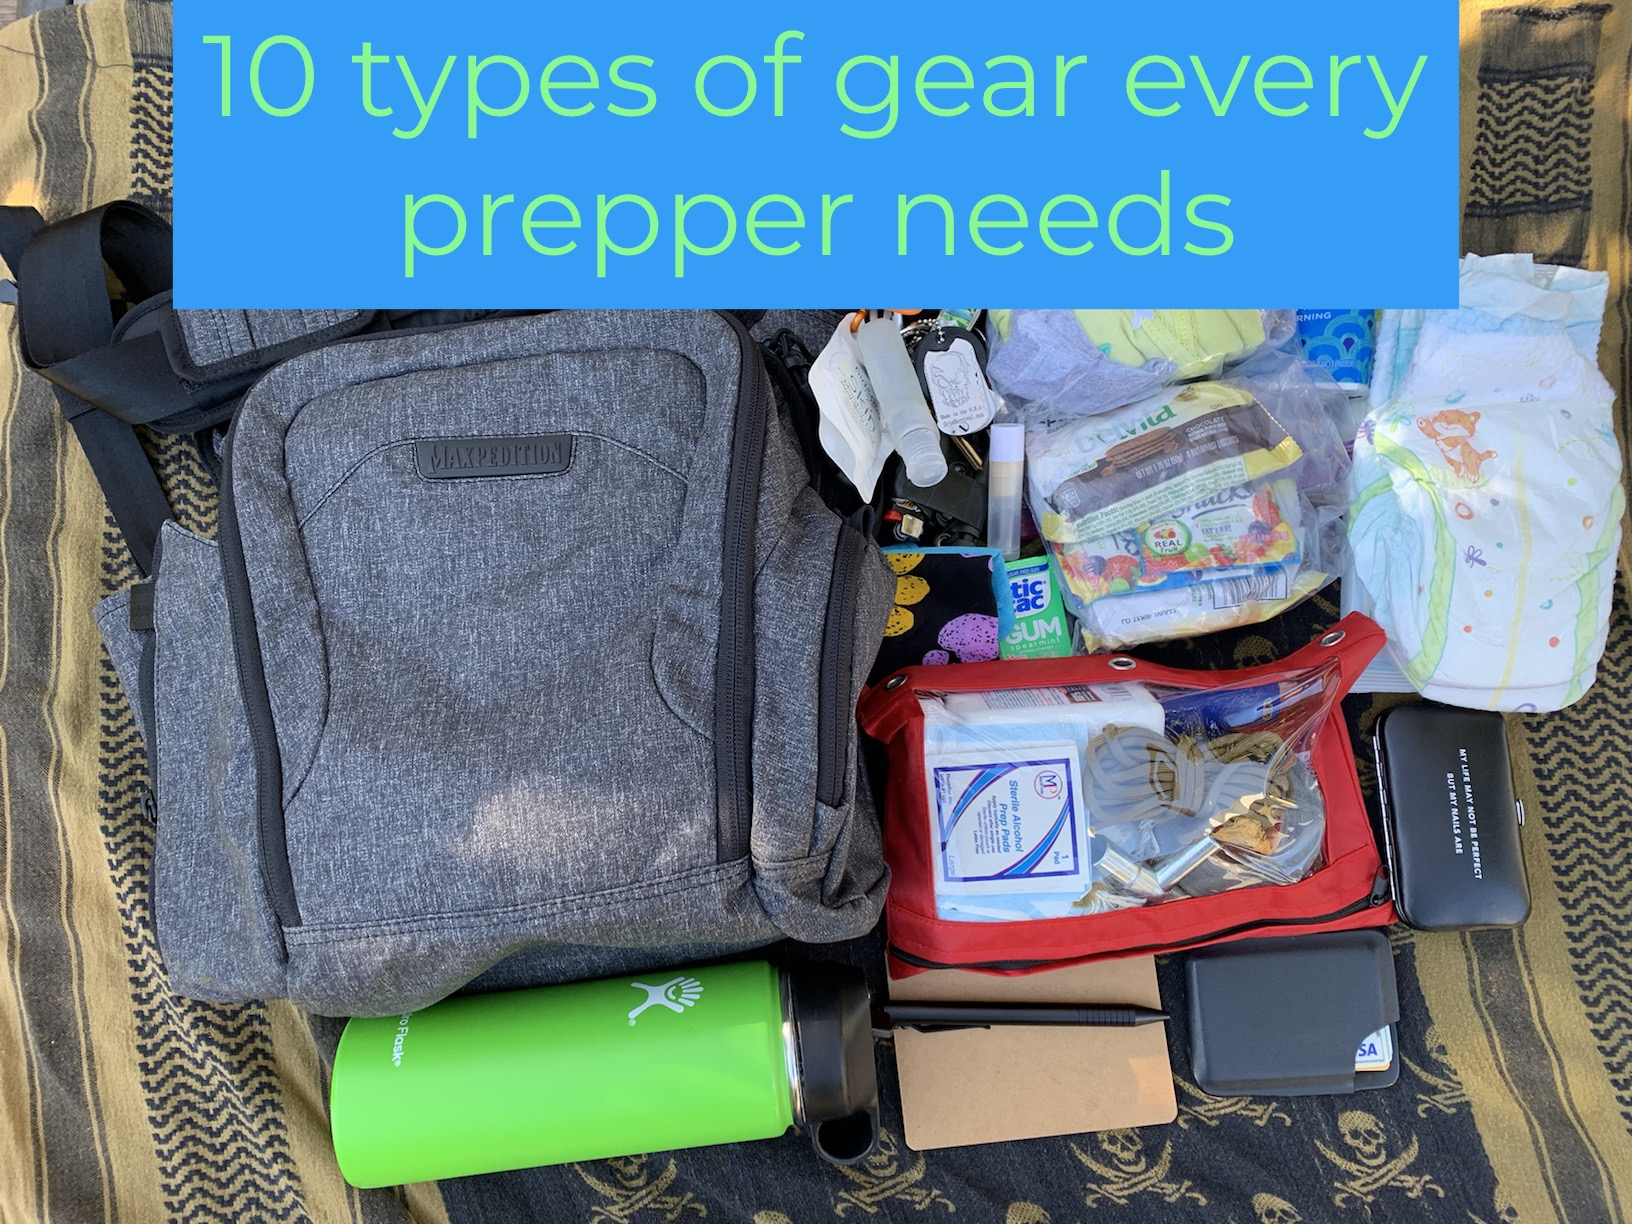 10 Types of Gear Every Prepper Needs